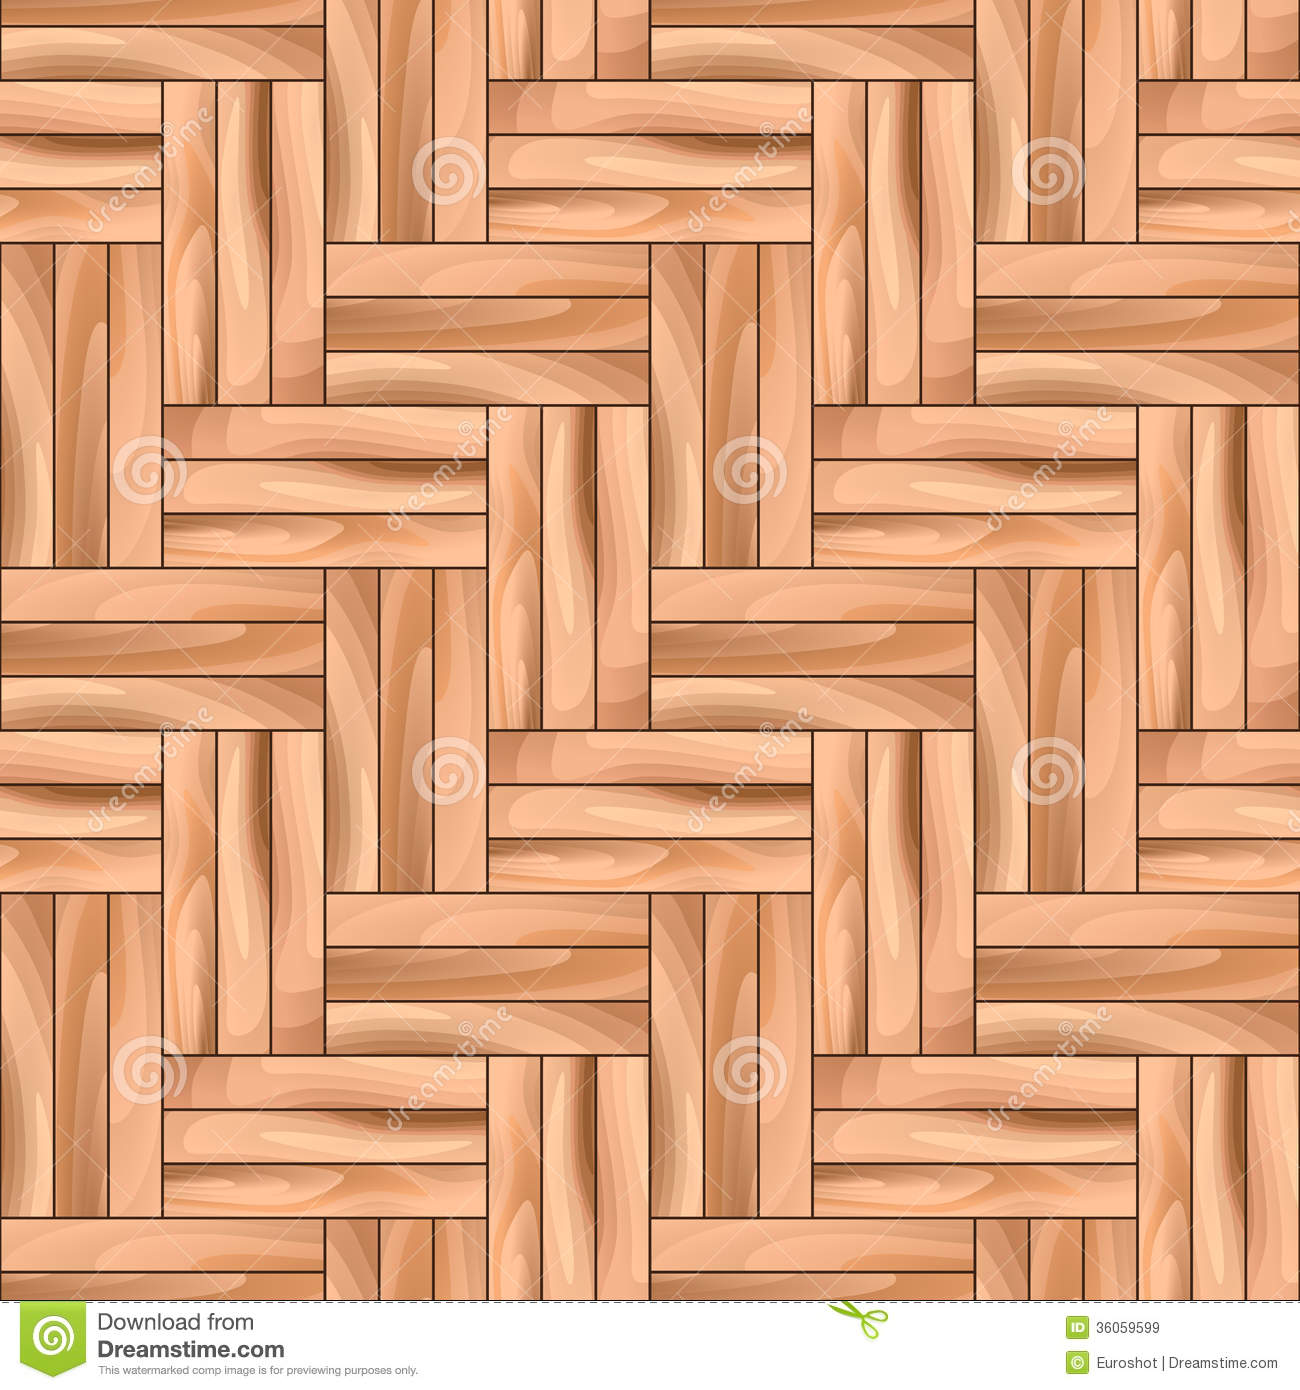 oak swallowtail parquet wooden seamless pattern royalty free stock images image 36059599. Black Bedroom Furniture Sets. Home Design Ideas